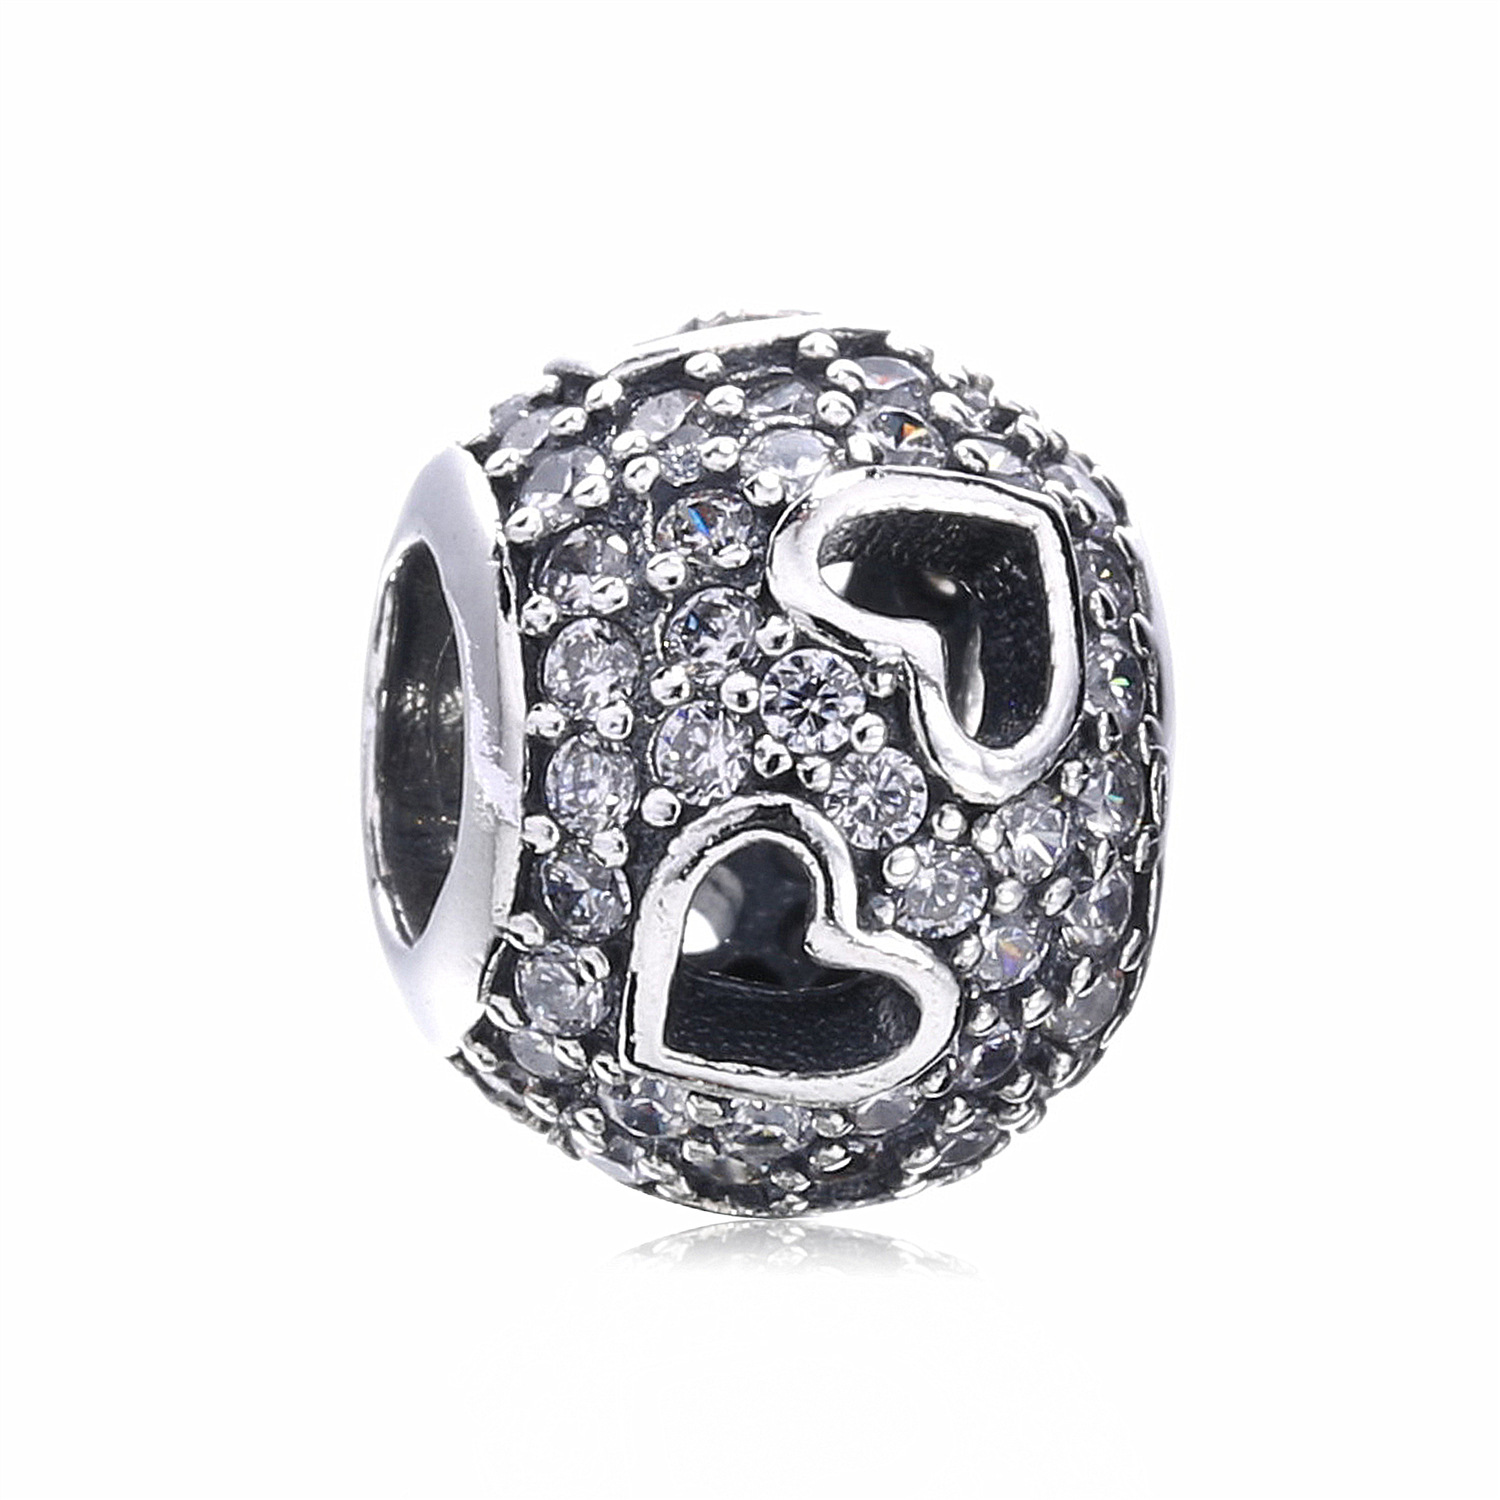 Authentic 925 Sterling Silver Love Heart Beads Charm Fit Original Pandora Charms Bracelets & Bangles Necklace Women DIY Jewelry